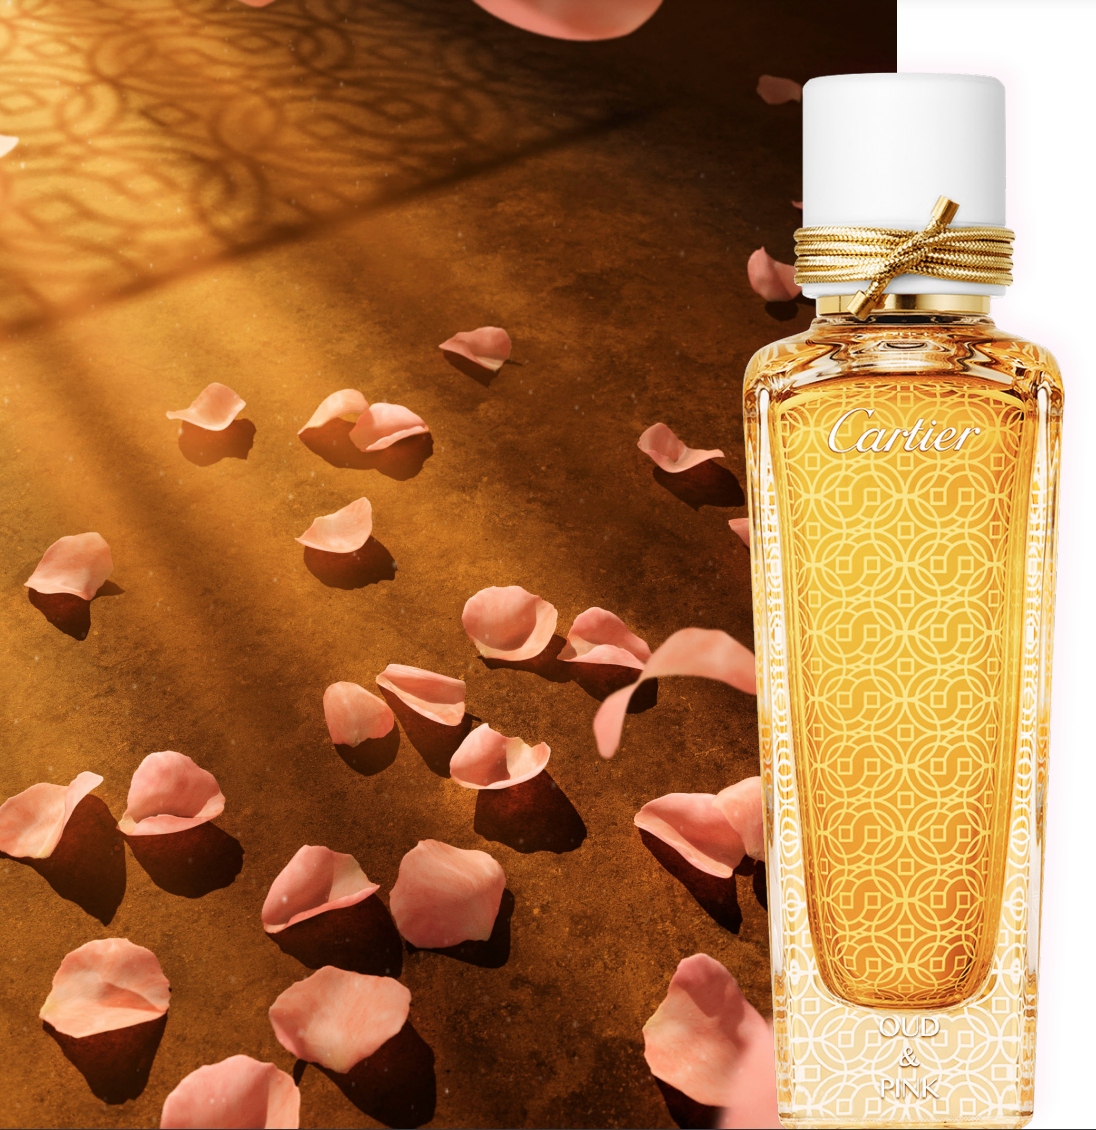 Nuevos-perfumes-Cartier-i-only-love-wild-roses-2021-5